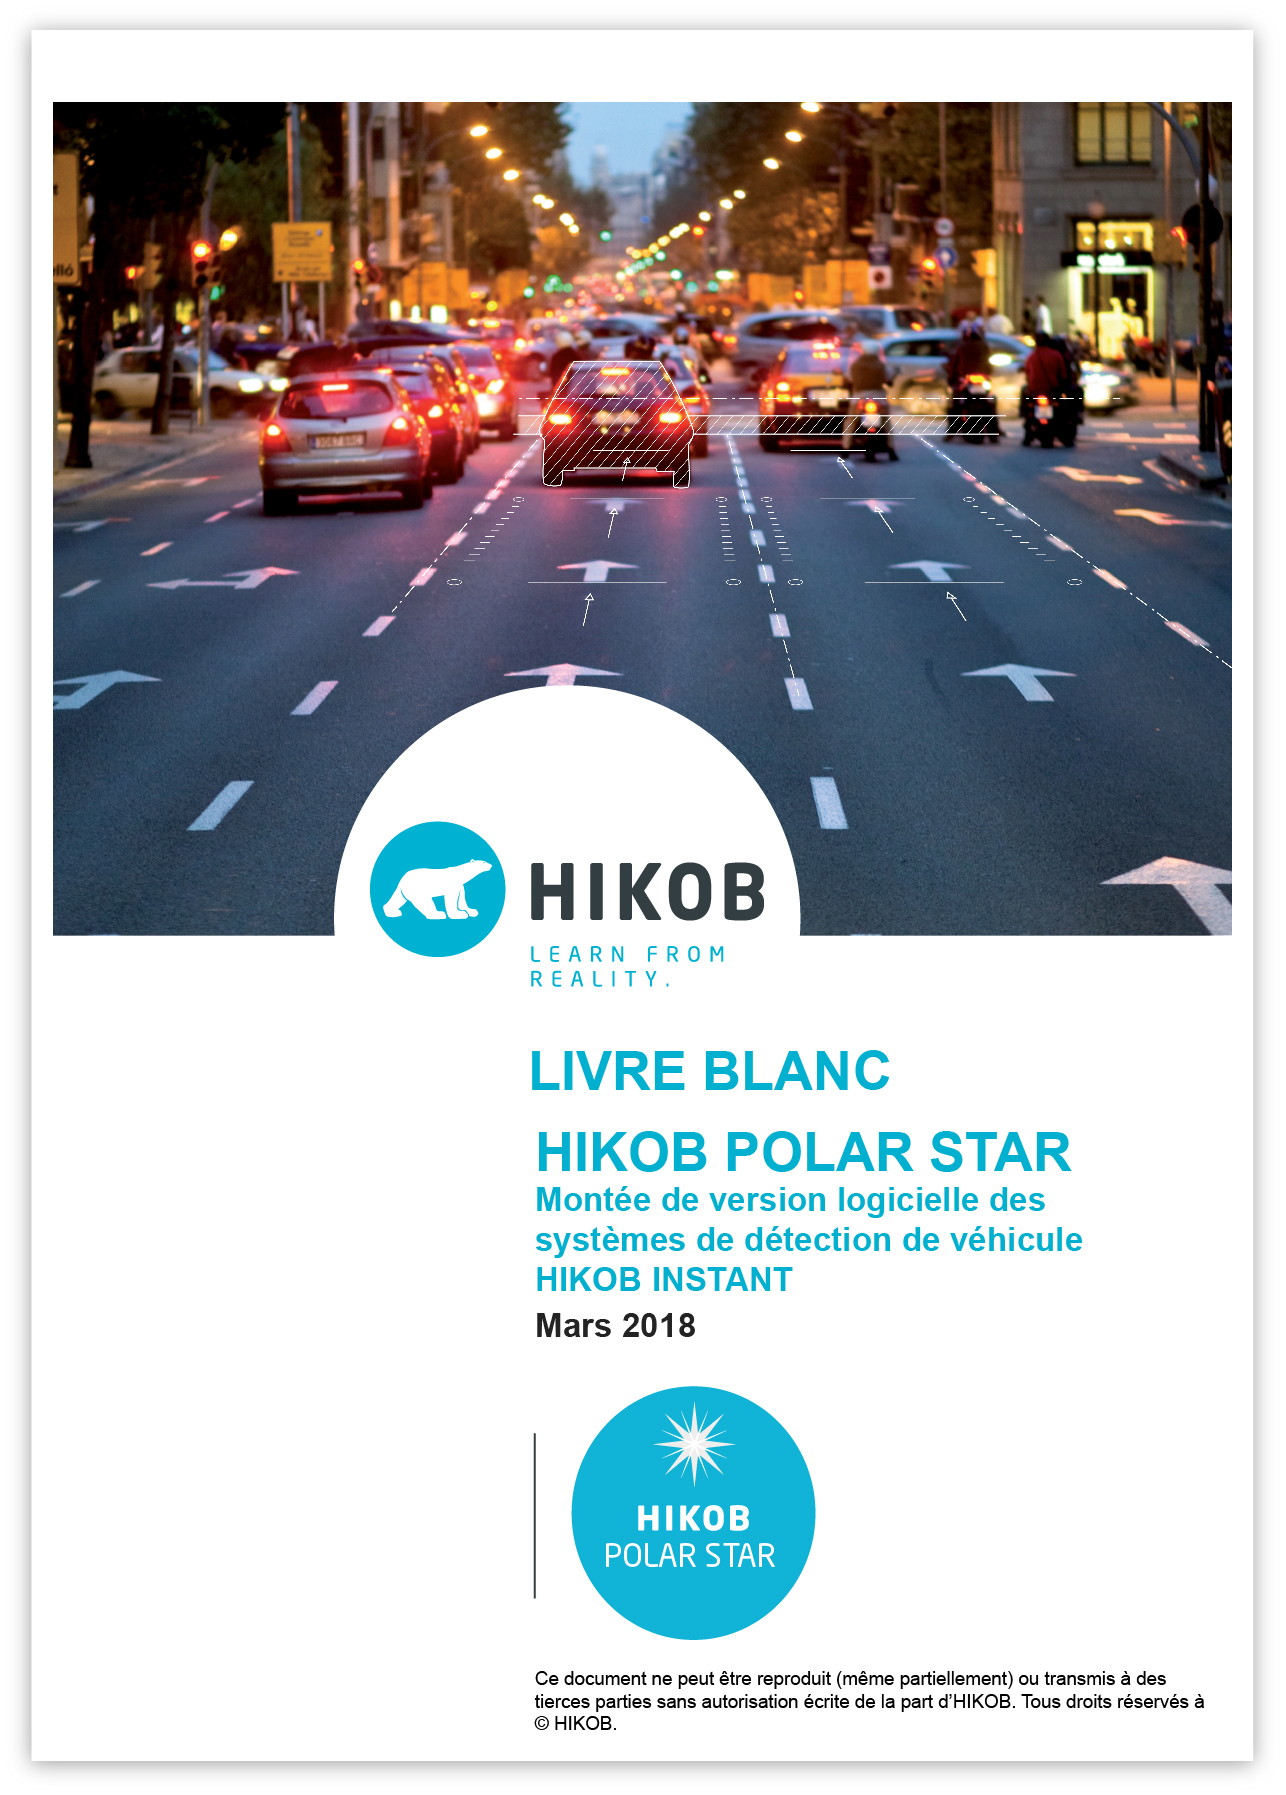 https://www.hikob.com/wp-content/uploads/2018/04/white_paper_couverture_FR-1.jpg